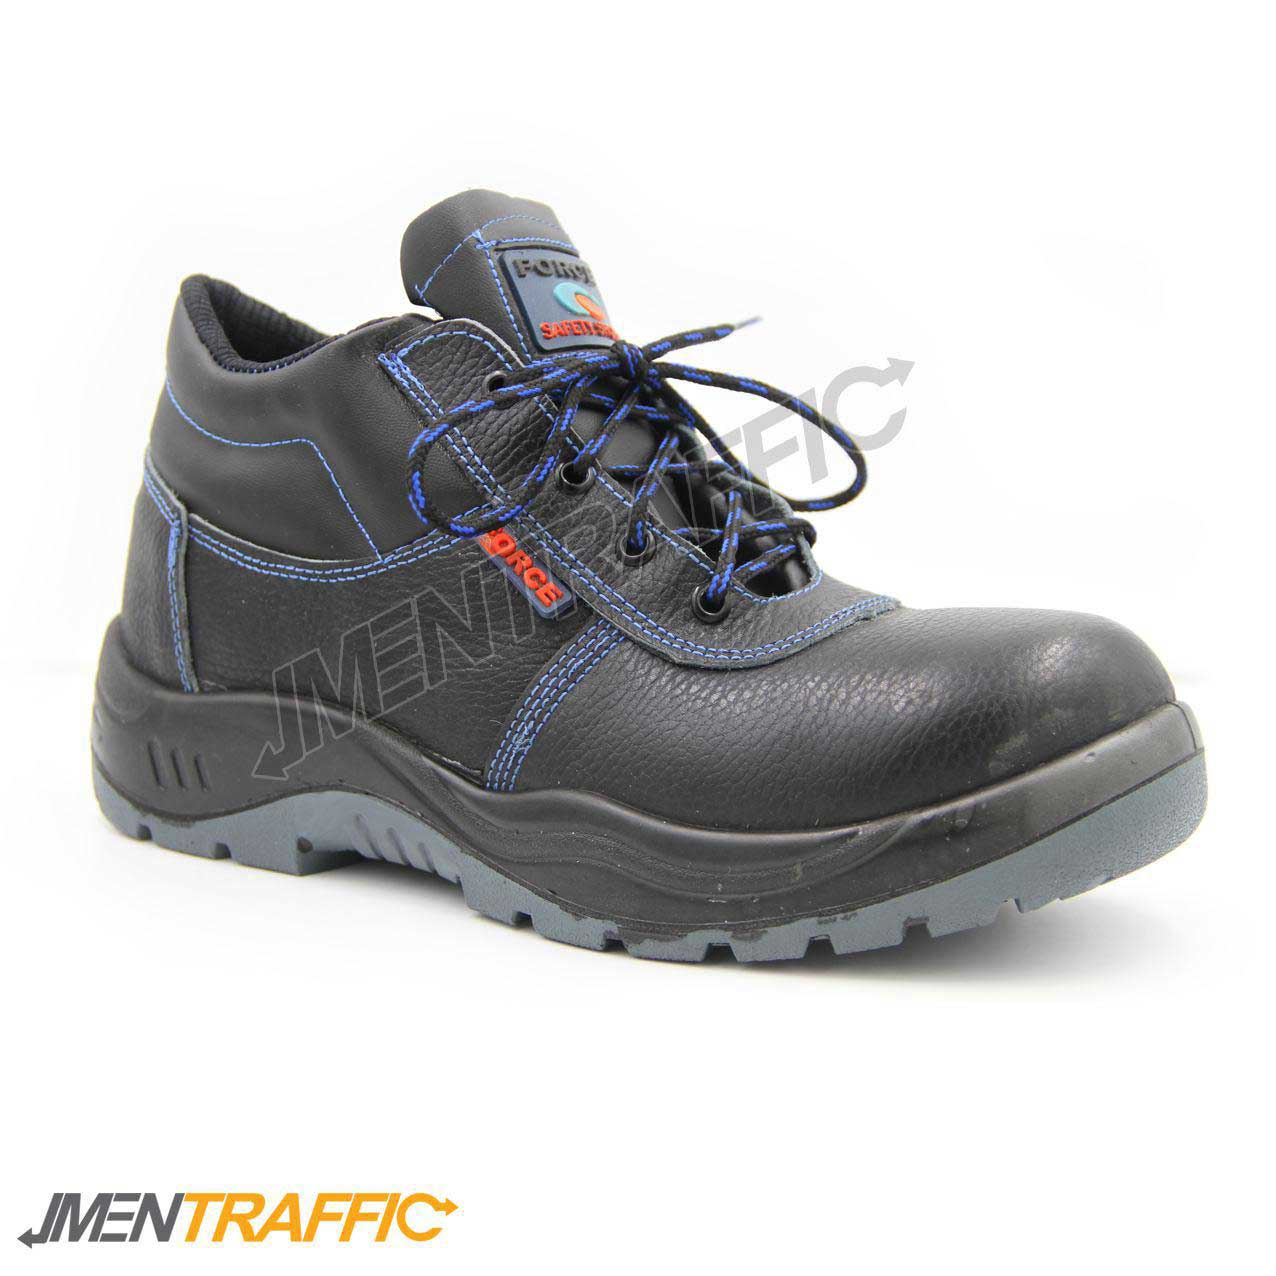 11a78f2a656 Miller Steel Safety Shoe | Miller safety shoes | Imentraffic